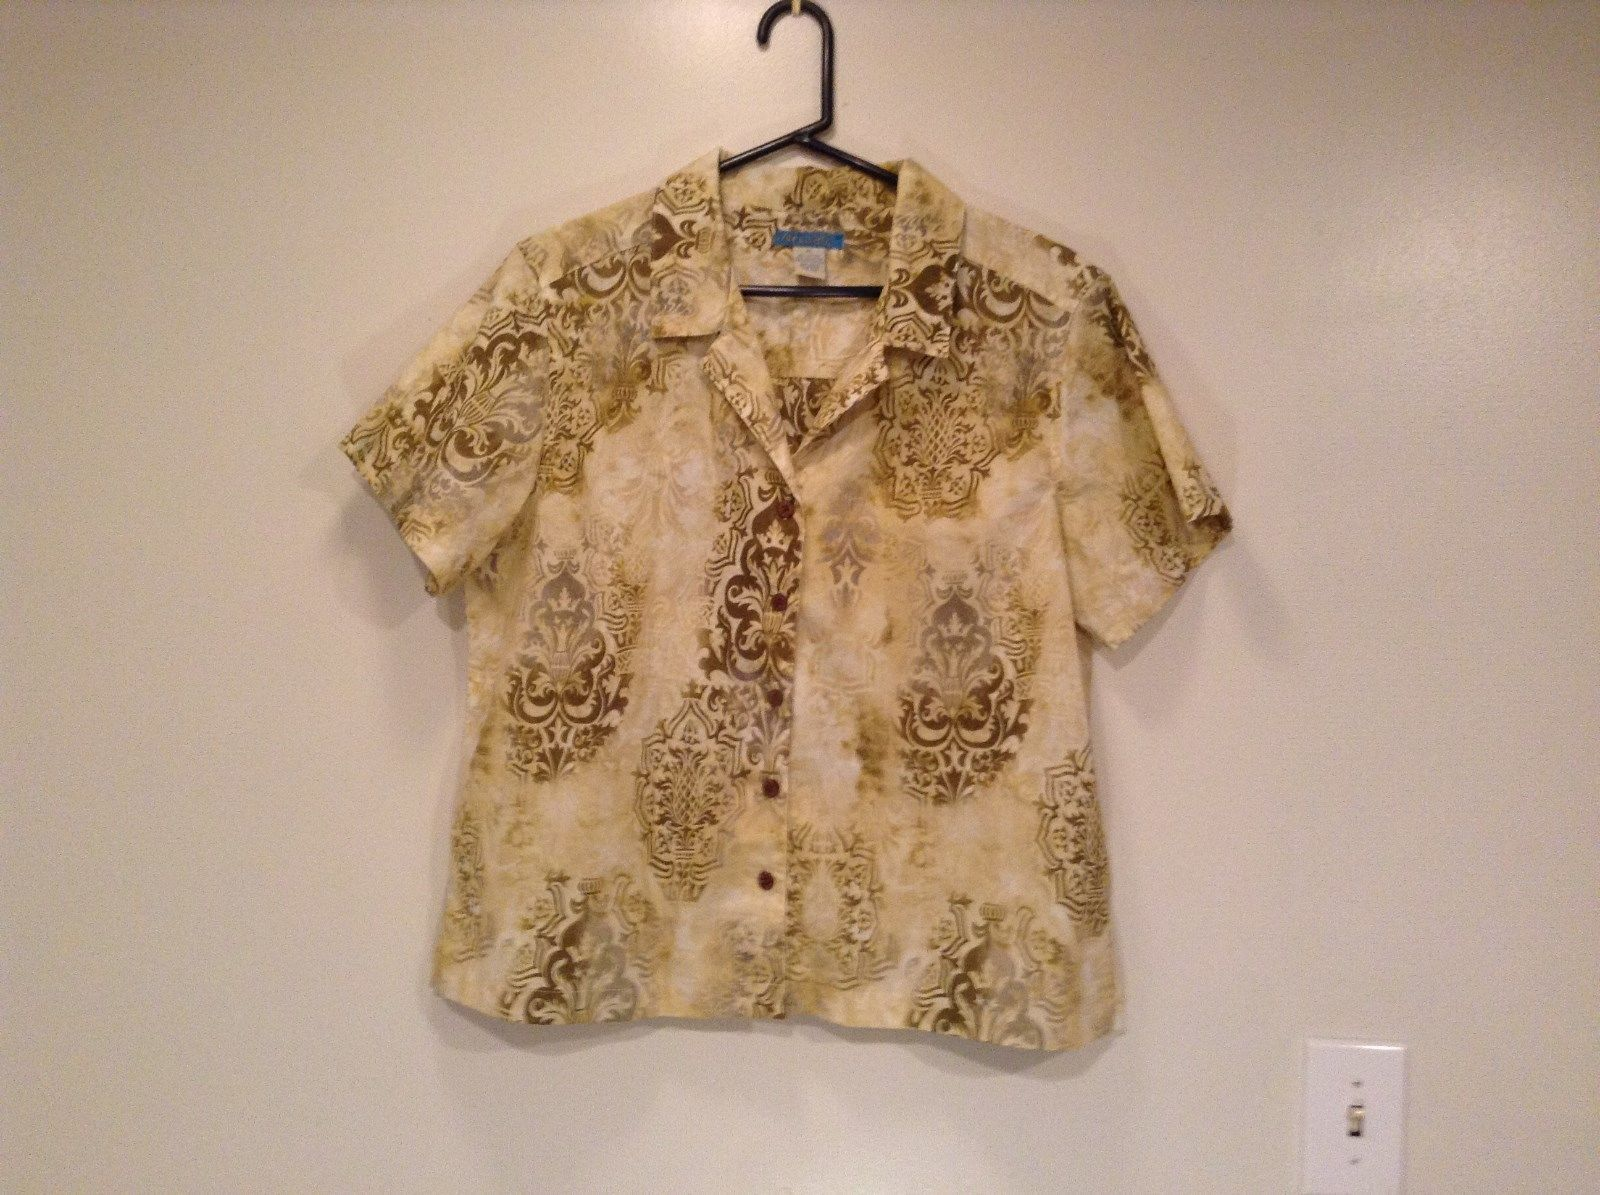 Tahiti Jake Short Sleeve Yellow Sand Colored with Floral Pattern Shirt Size XL